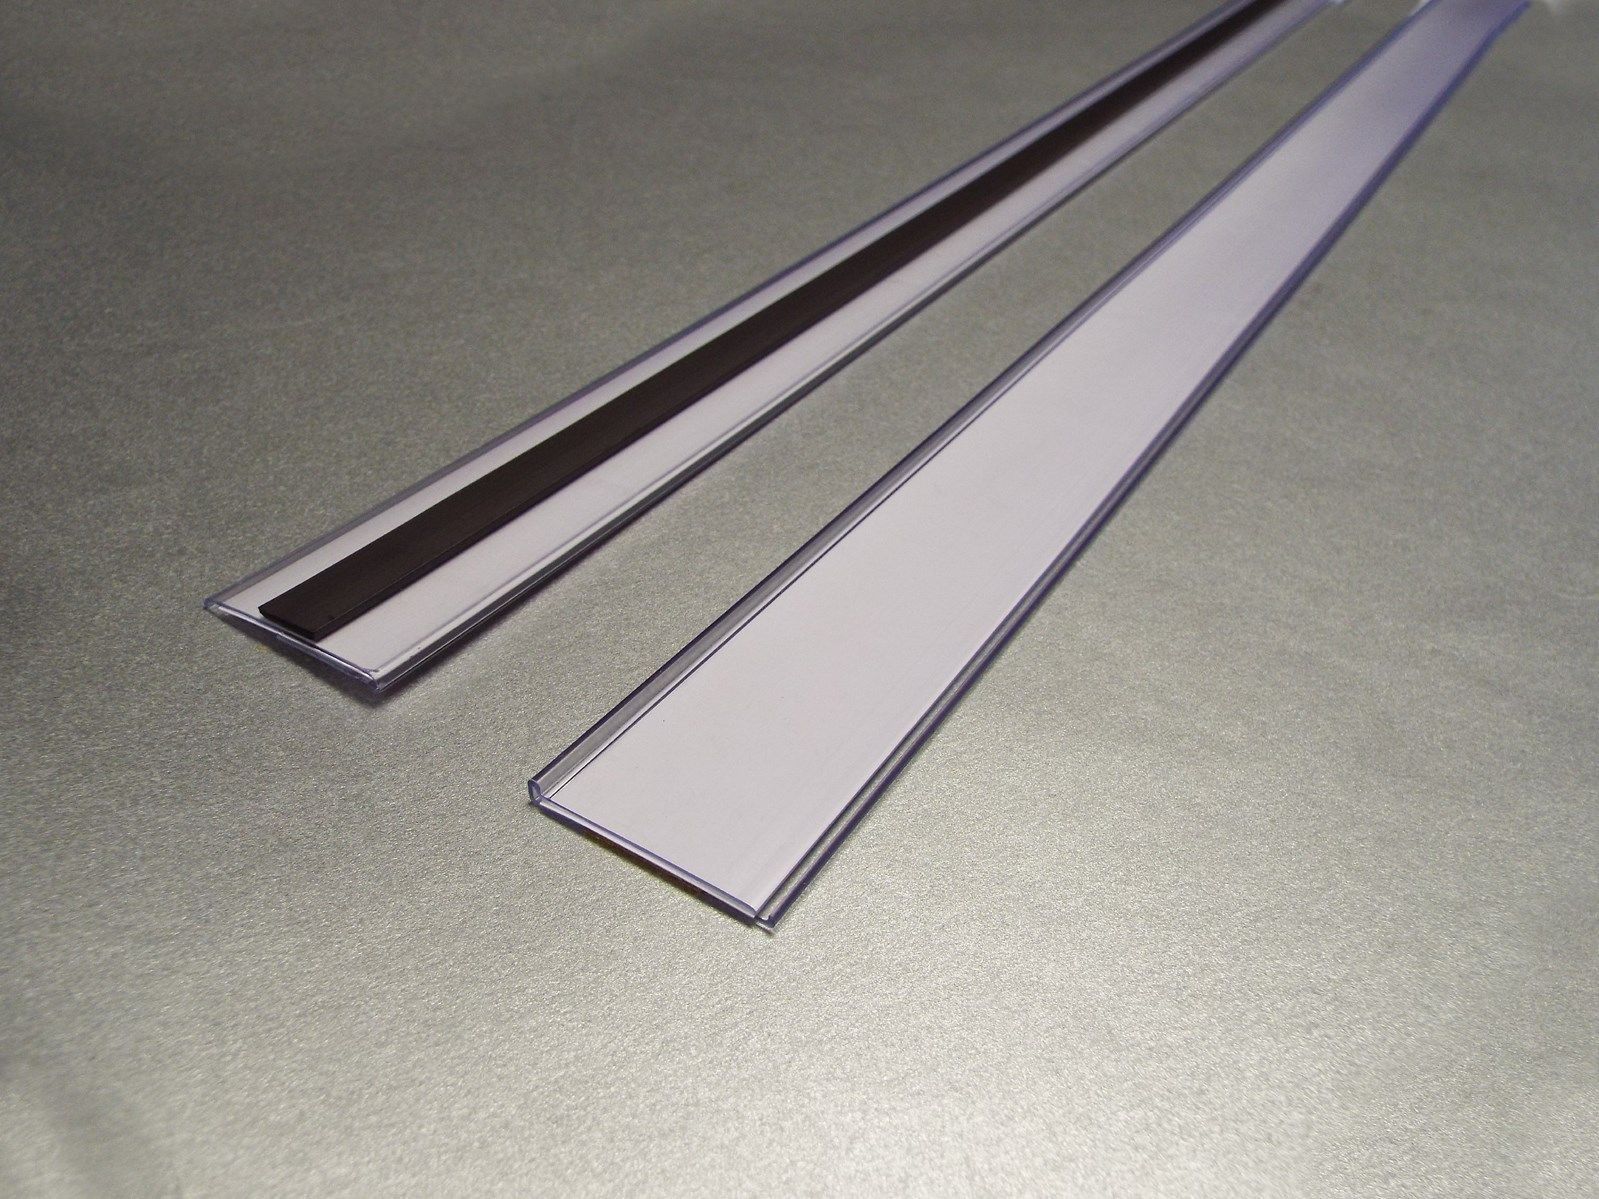 Magnetic Ticket Holders 38mm HIGH EPOS Strips 1M LONG, Pack of 10